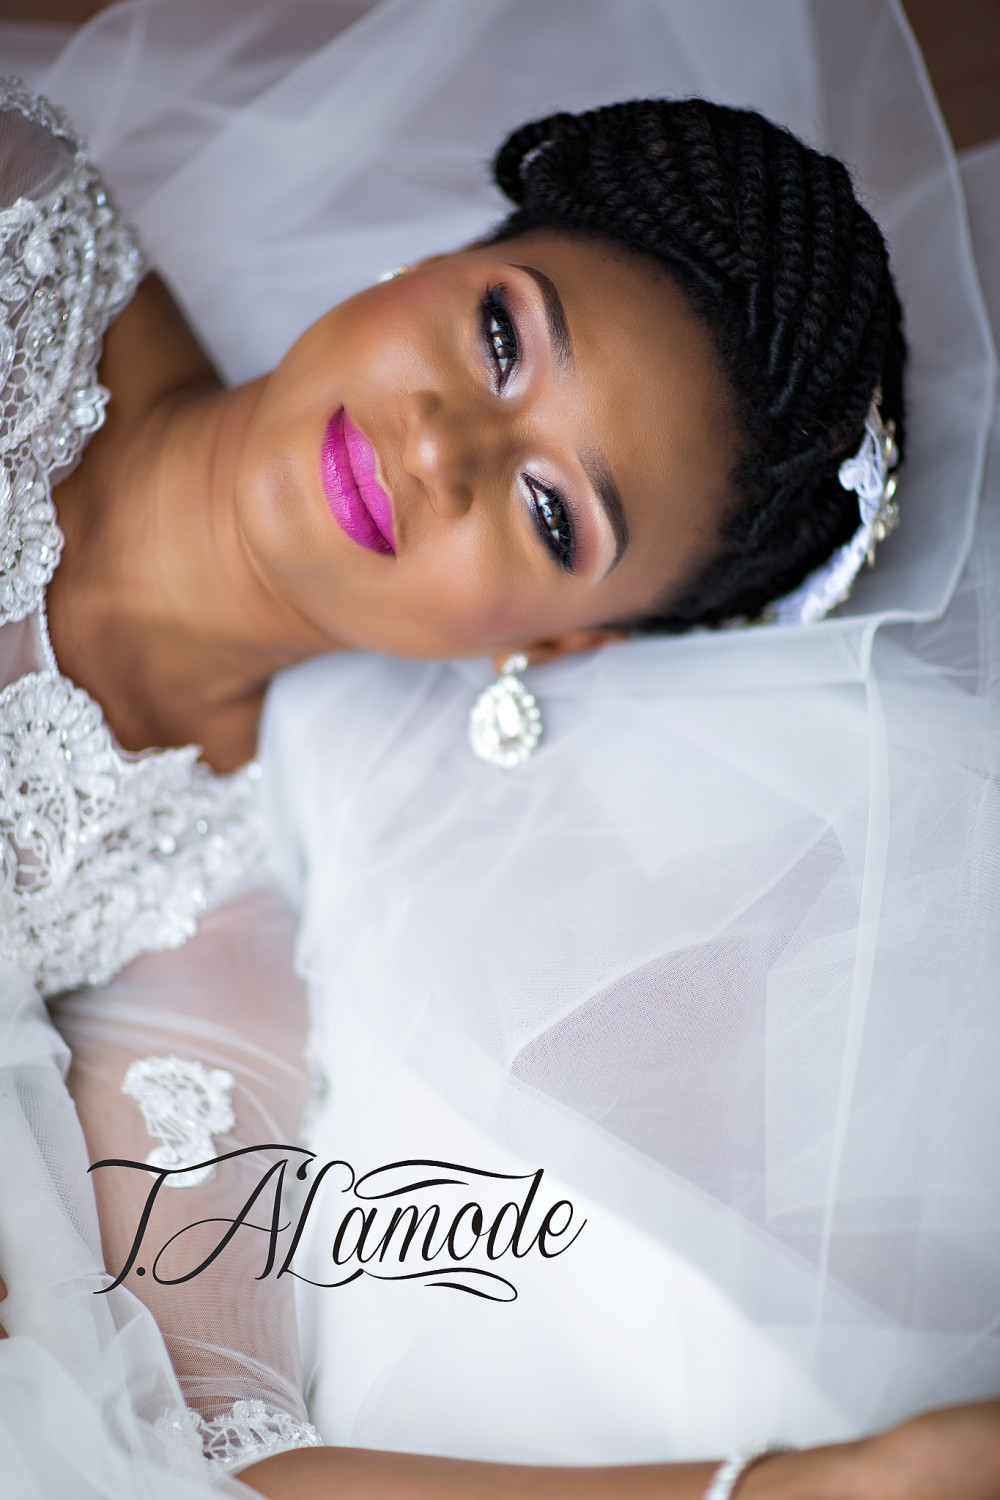 Striking Natural Hair Looks For The 2015 Bride: Striking Natural Hair Looks For The 2015 Bride!